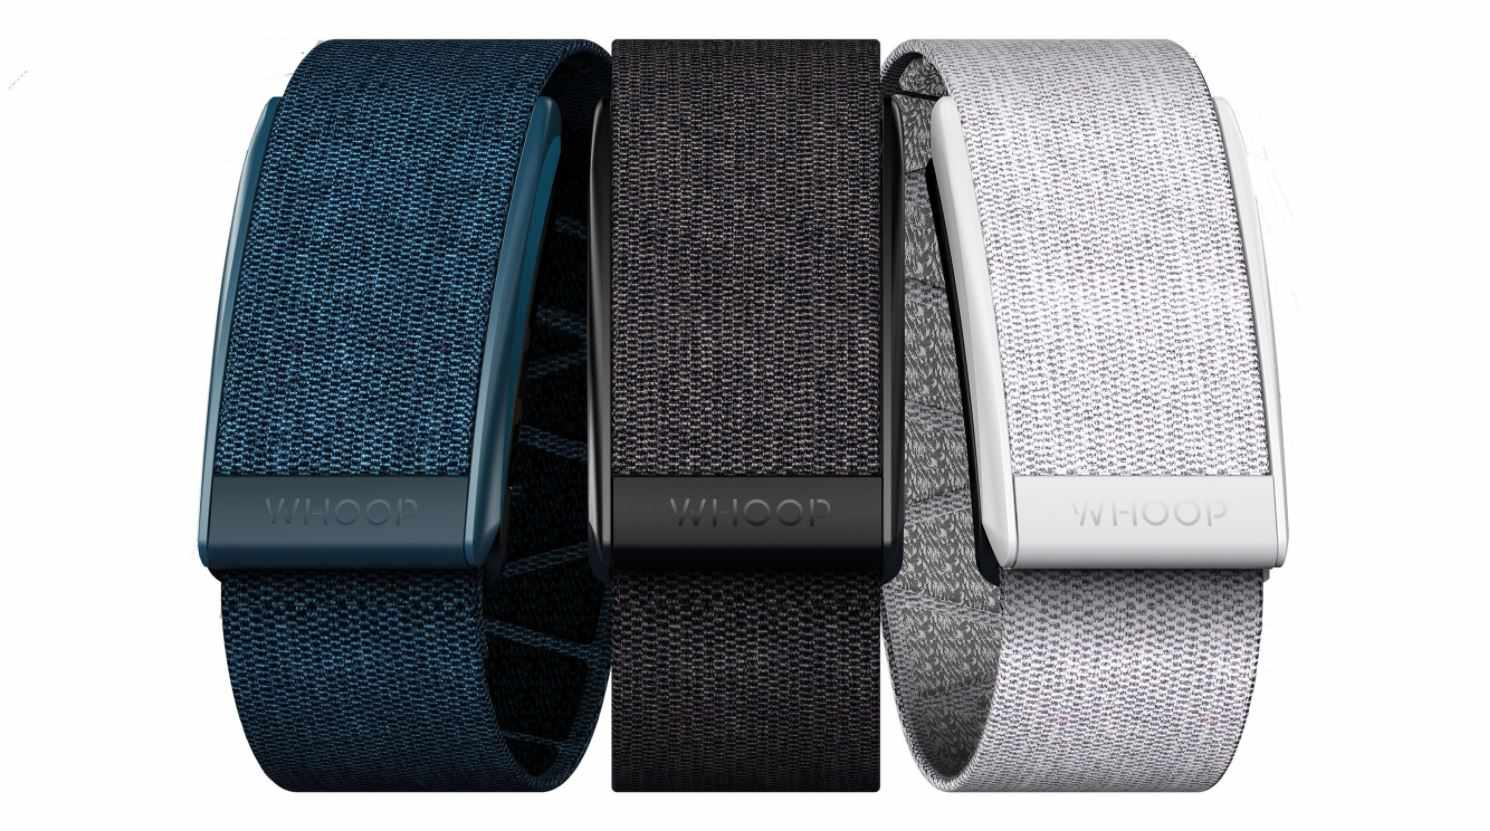 Three fitness wearable devices against a white background.